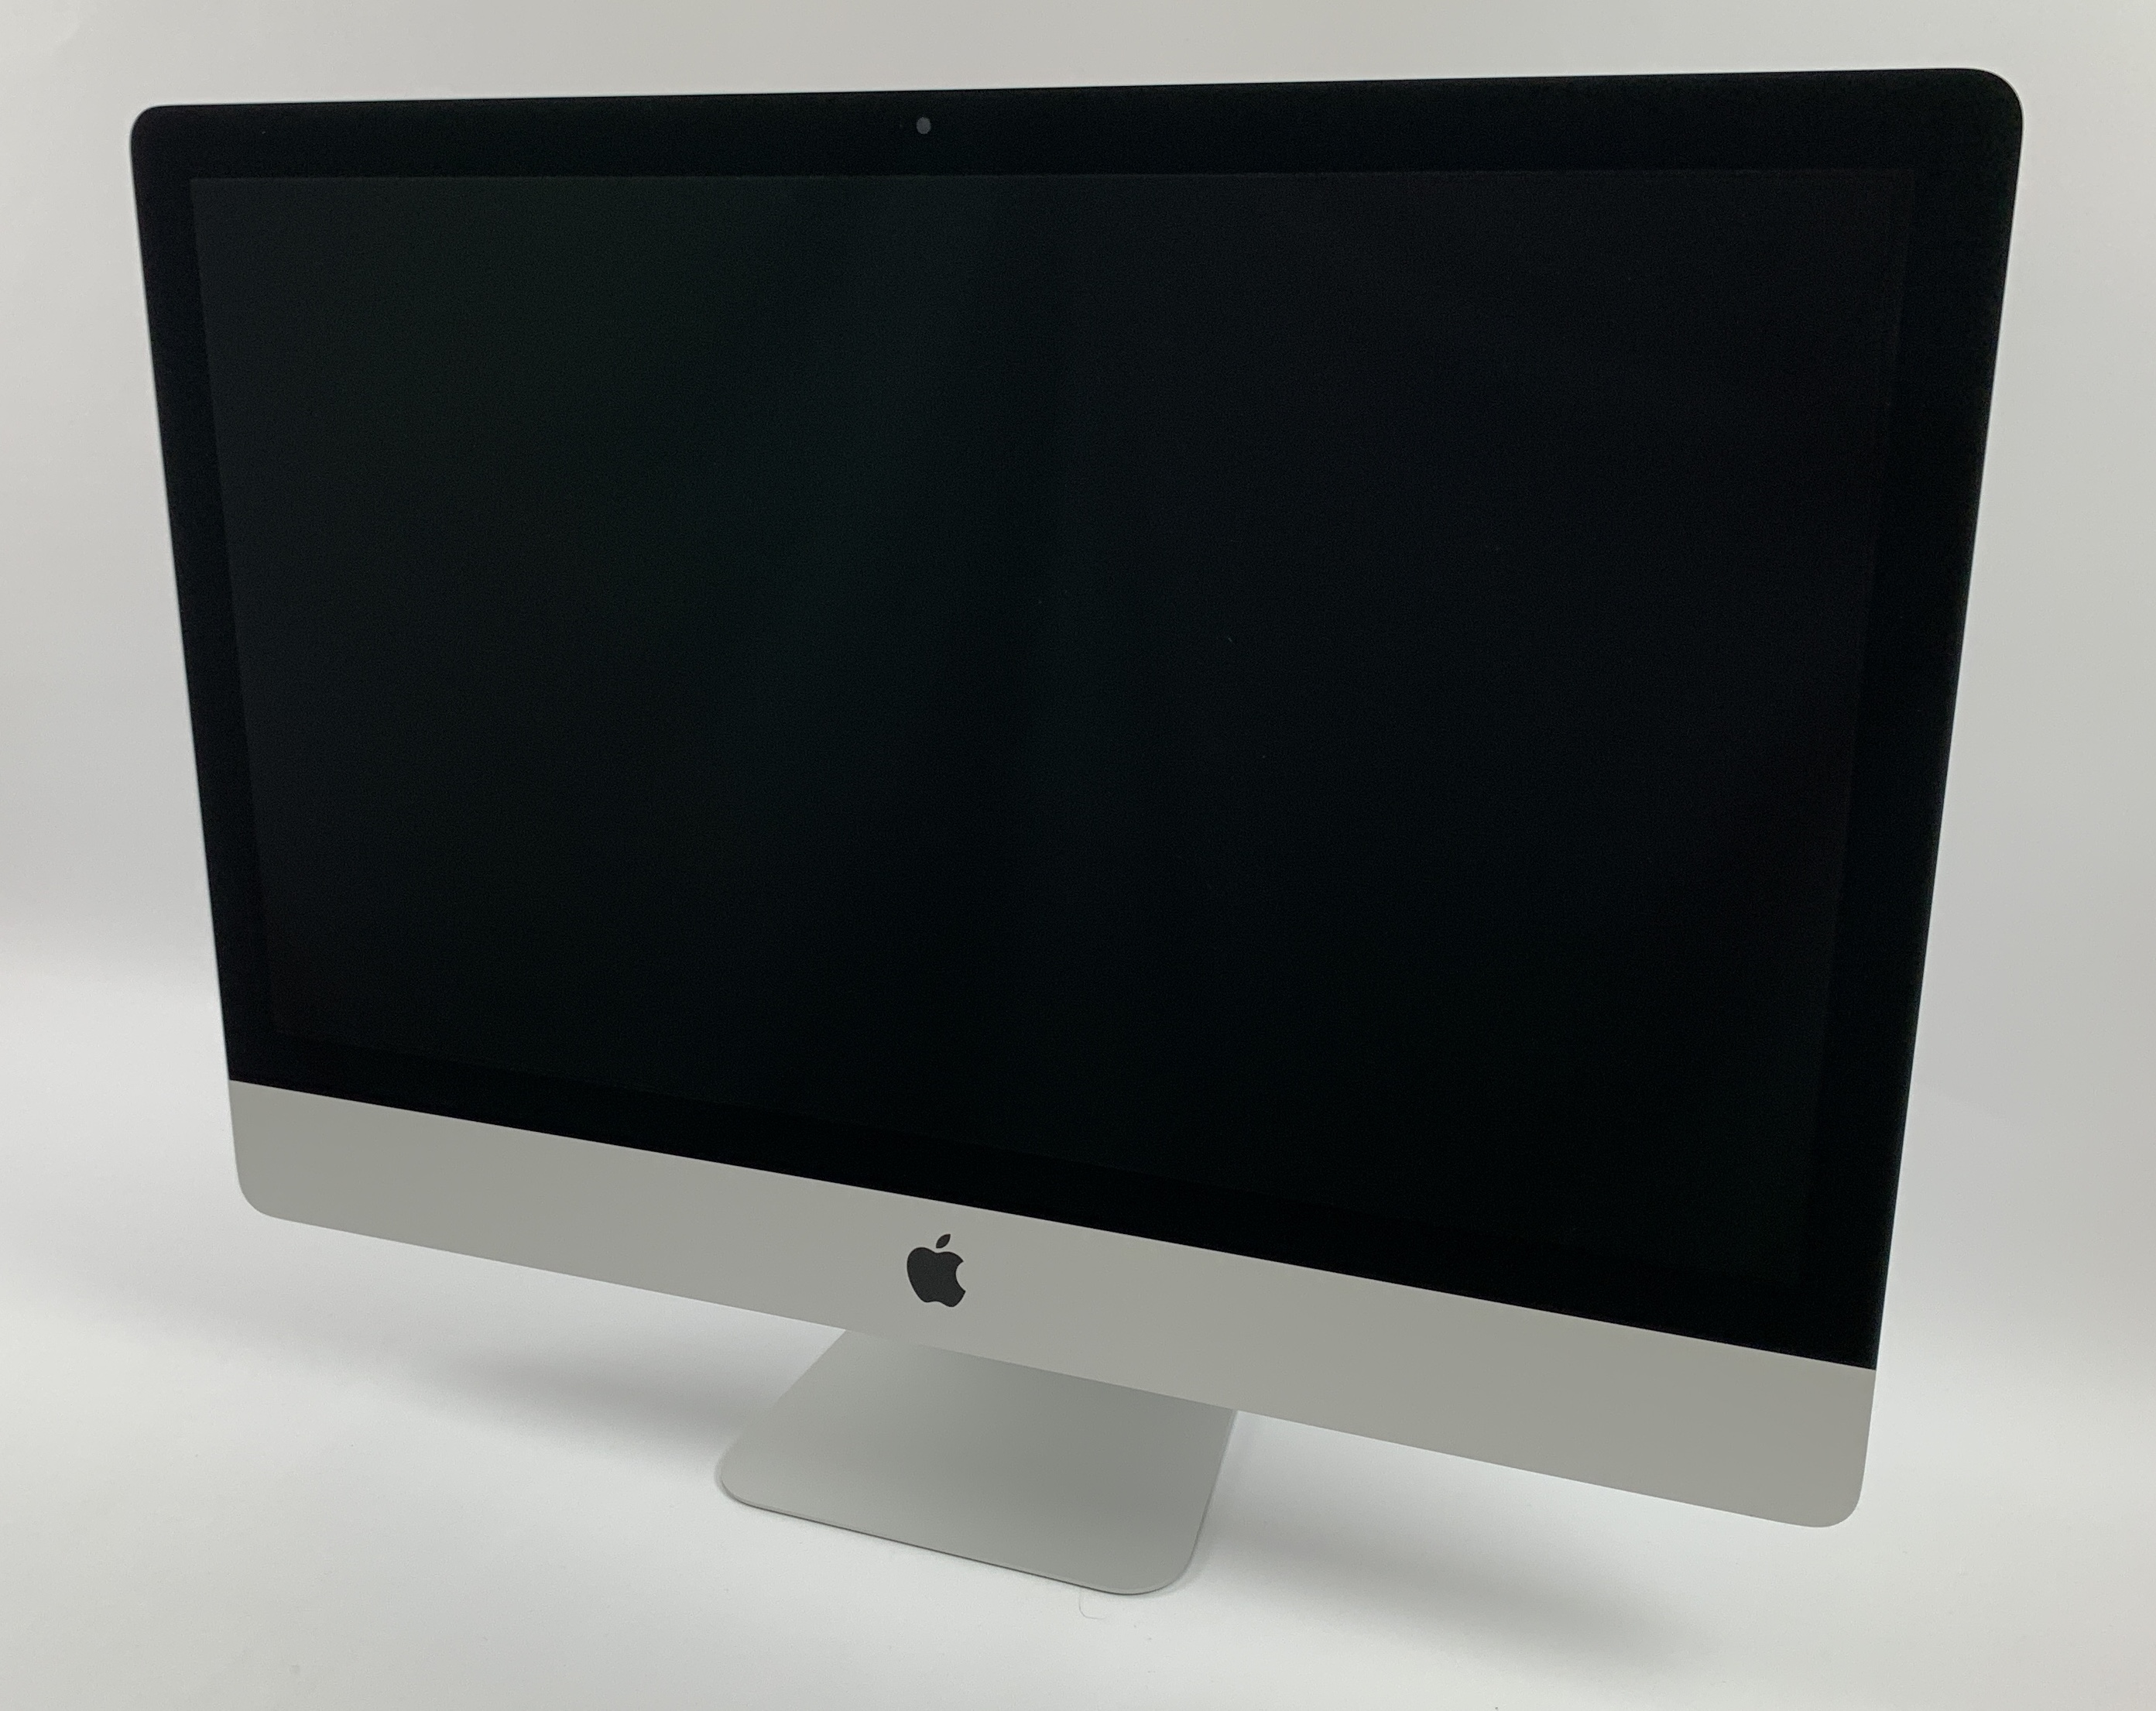 "iMac 27"" Retina 5K Mid 2020 (Intel 6-Core i5 3.1 GHz 32 GB RAM 256 GB SSD), Intel 6-Core i5 3.1 GHz, 32 GB RAM, 256 GB SSD, Kuva 1"